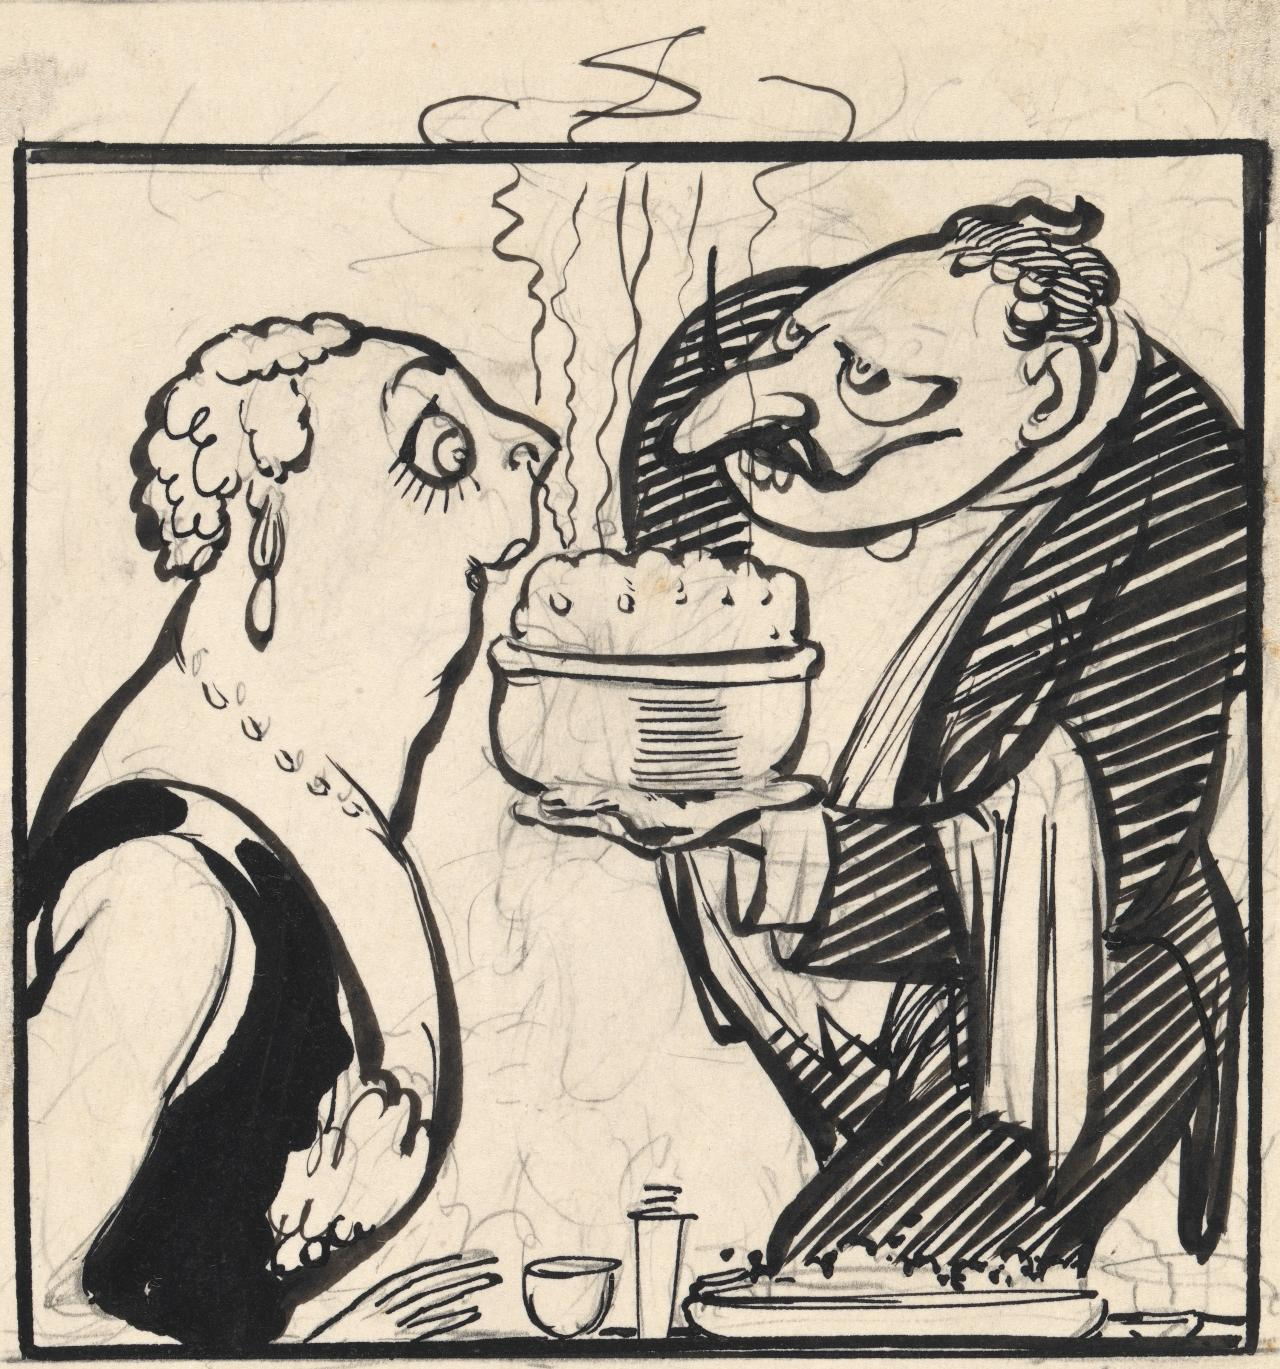 A foreign agent of food traffickers tempting a stylish stout. From Dr Whooper's collection